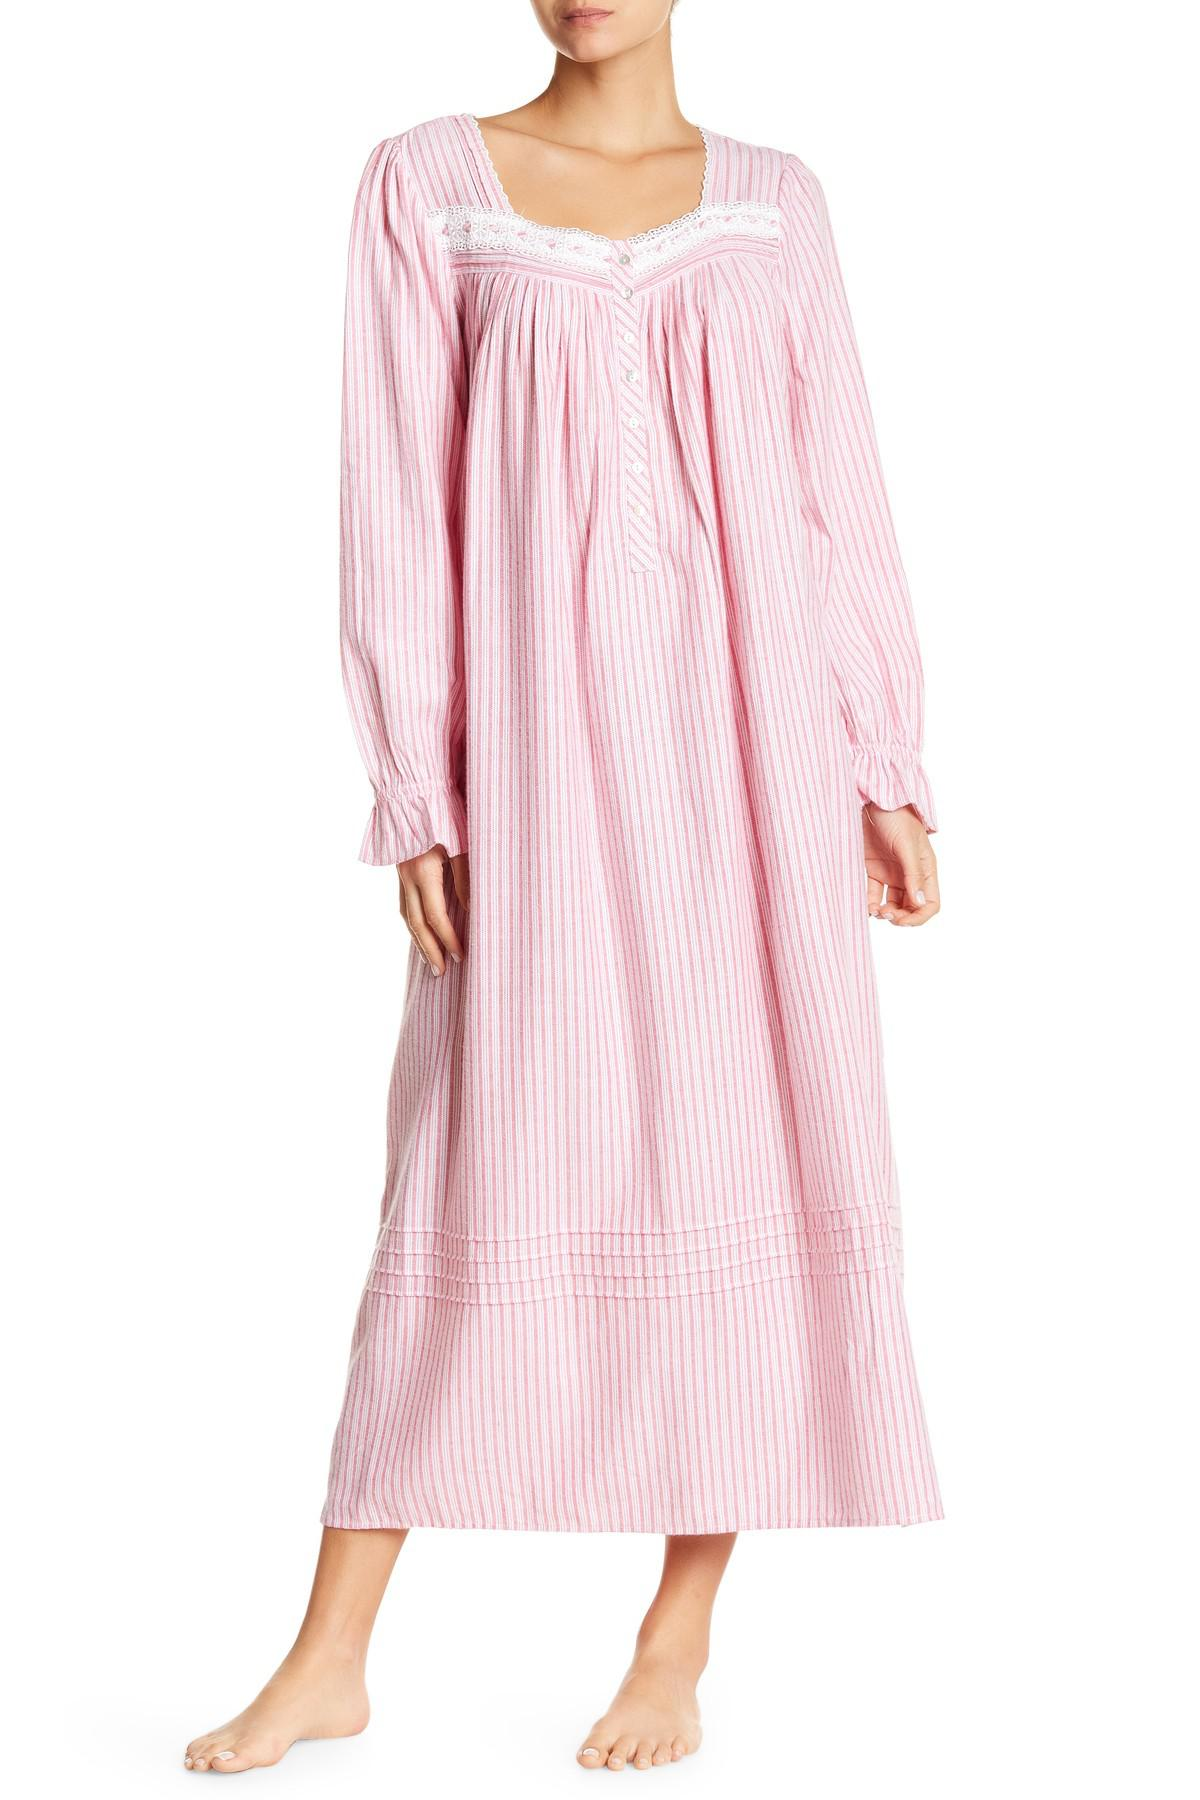 bde384adfe Lyst - Eileen West Long Sleeve Printed Ballet Nightgown in Pink